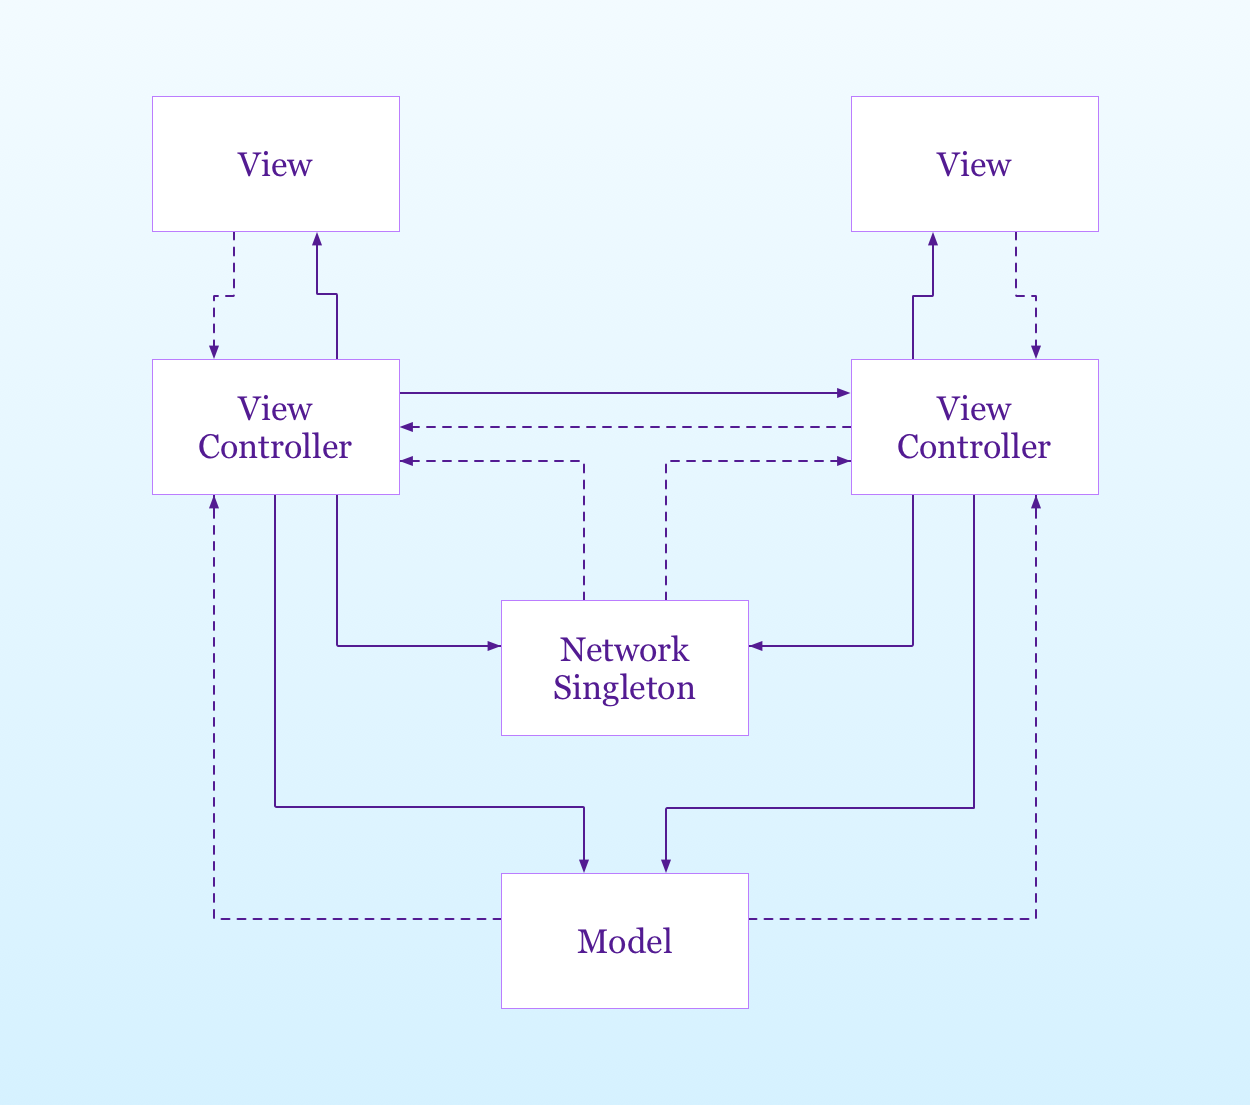 the network singleton in the MVC desing pattern